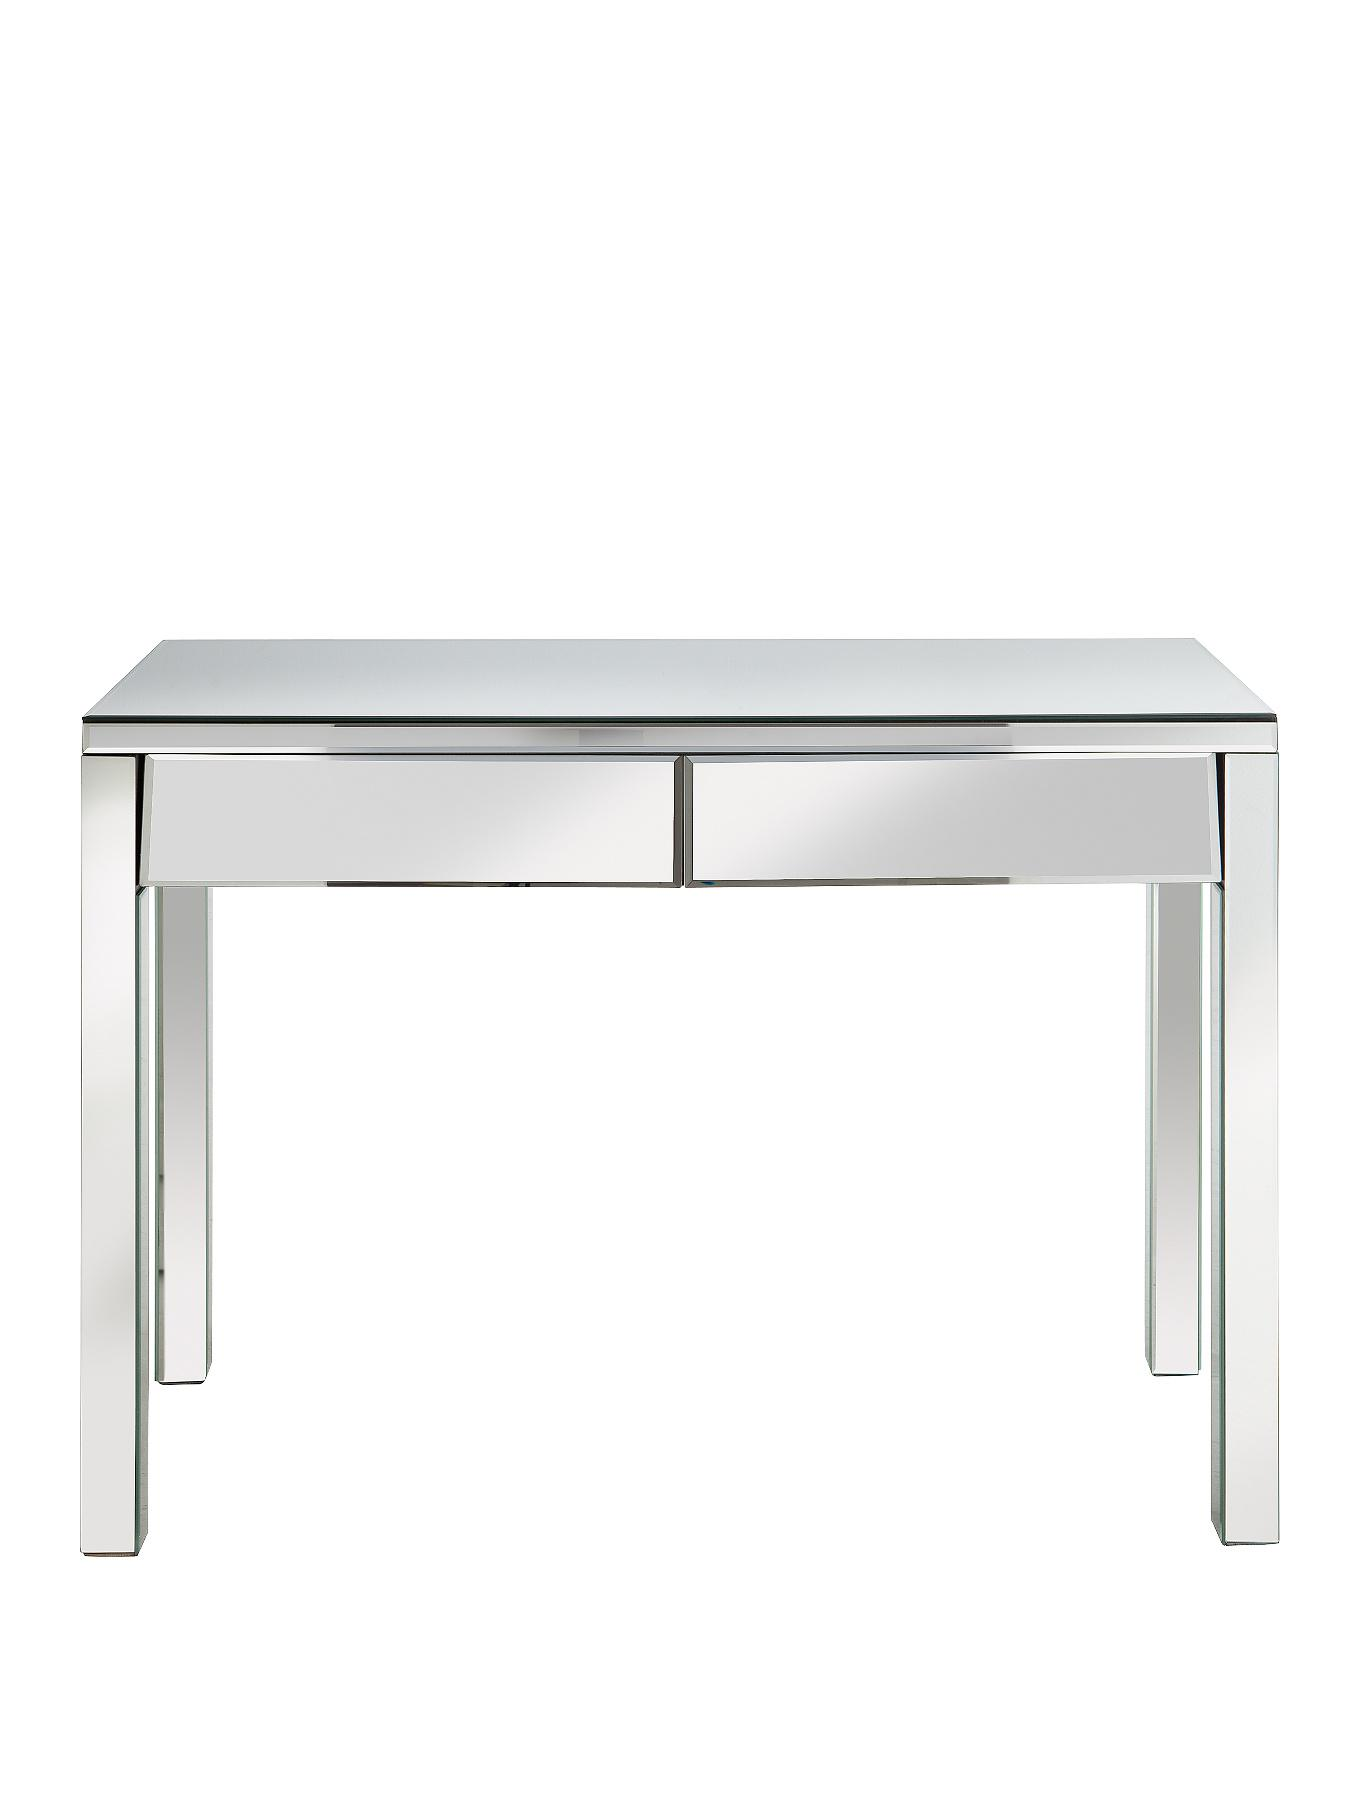 New Monte Carlo Ready Assembled 2-Drawer Mirrored Dressing Table